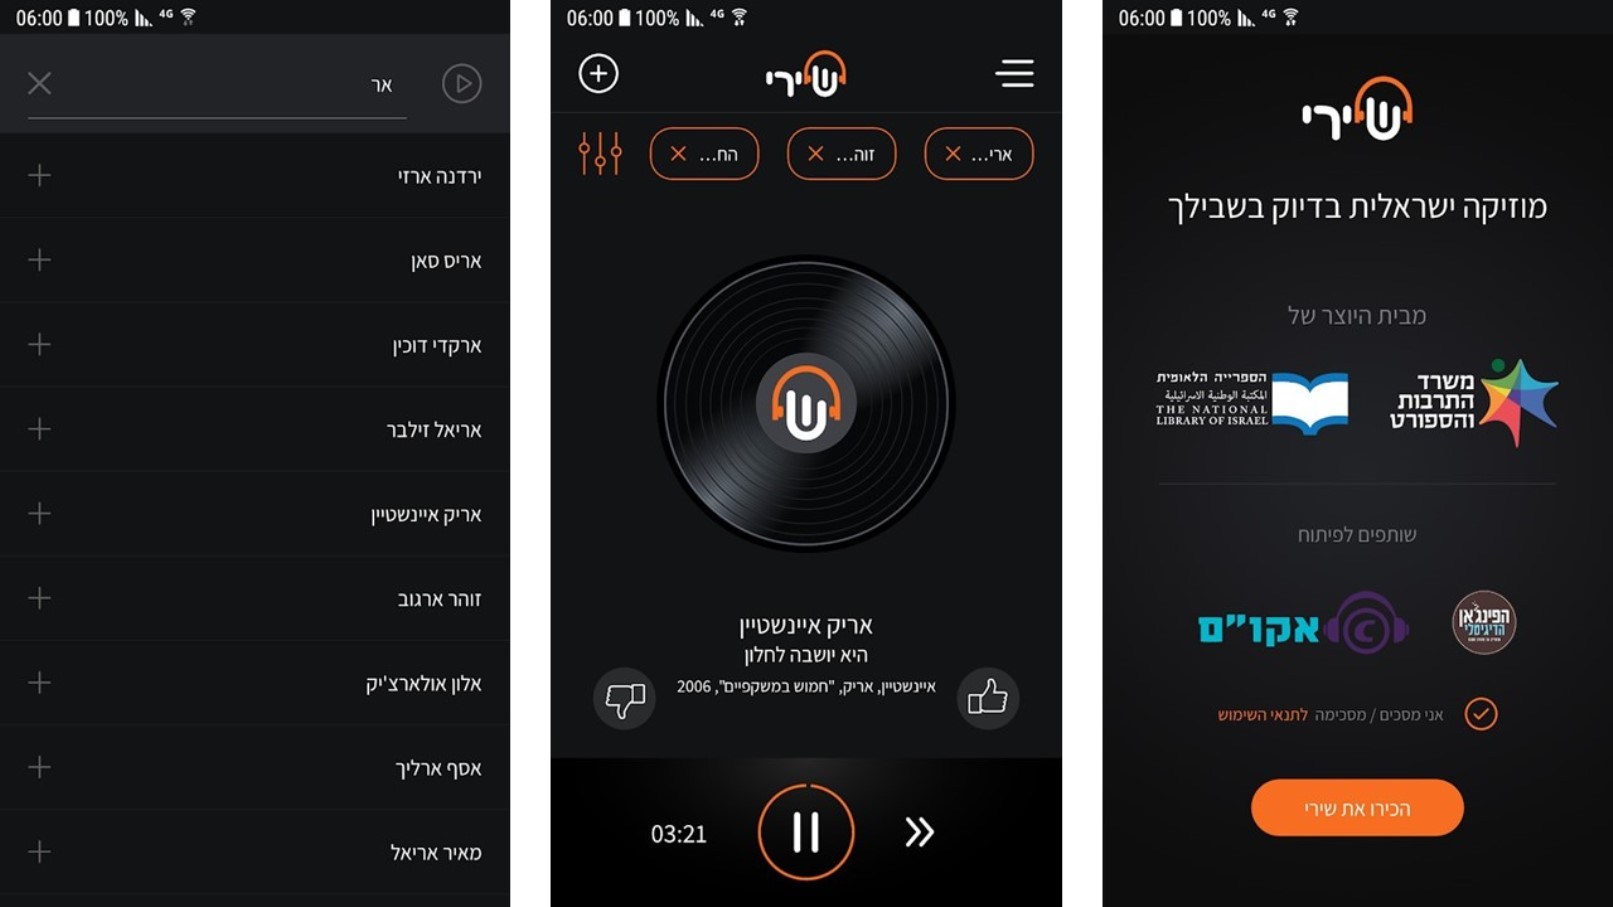 Israel National Library launches free Israeli music app